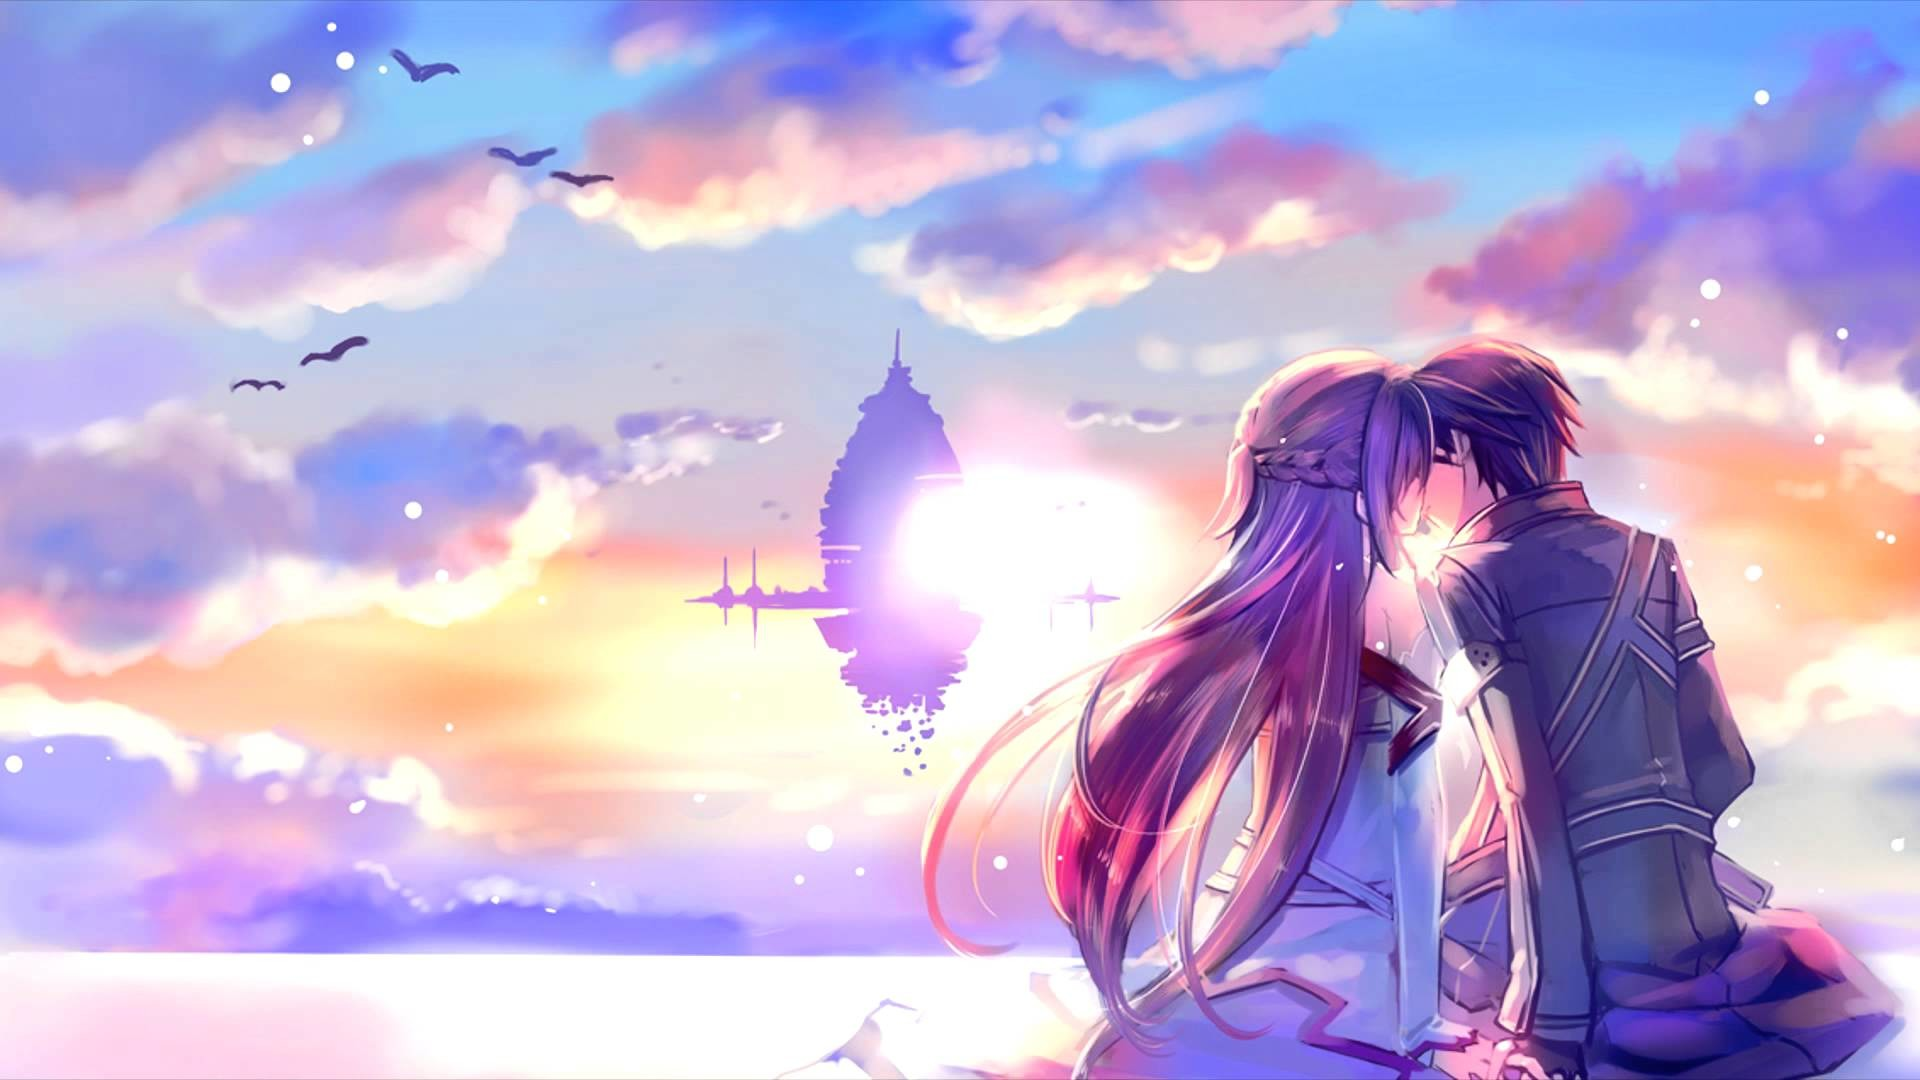 Anime Love Wallpapers: Love Anime Wallpaper (74+ Images